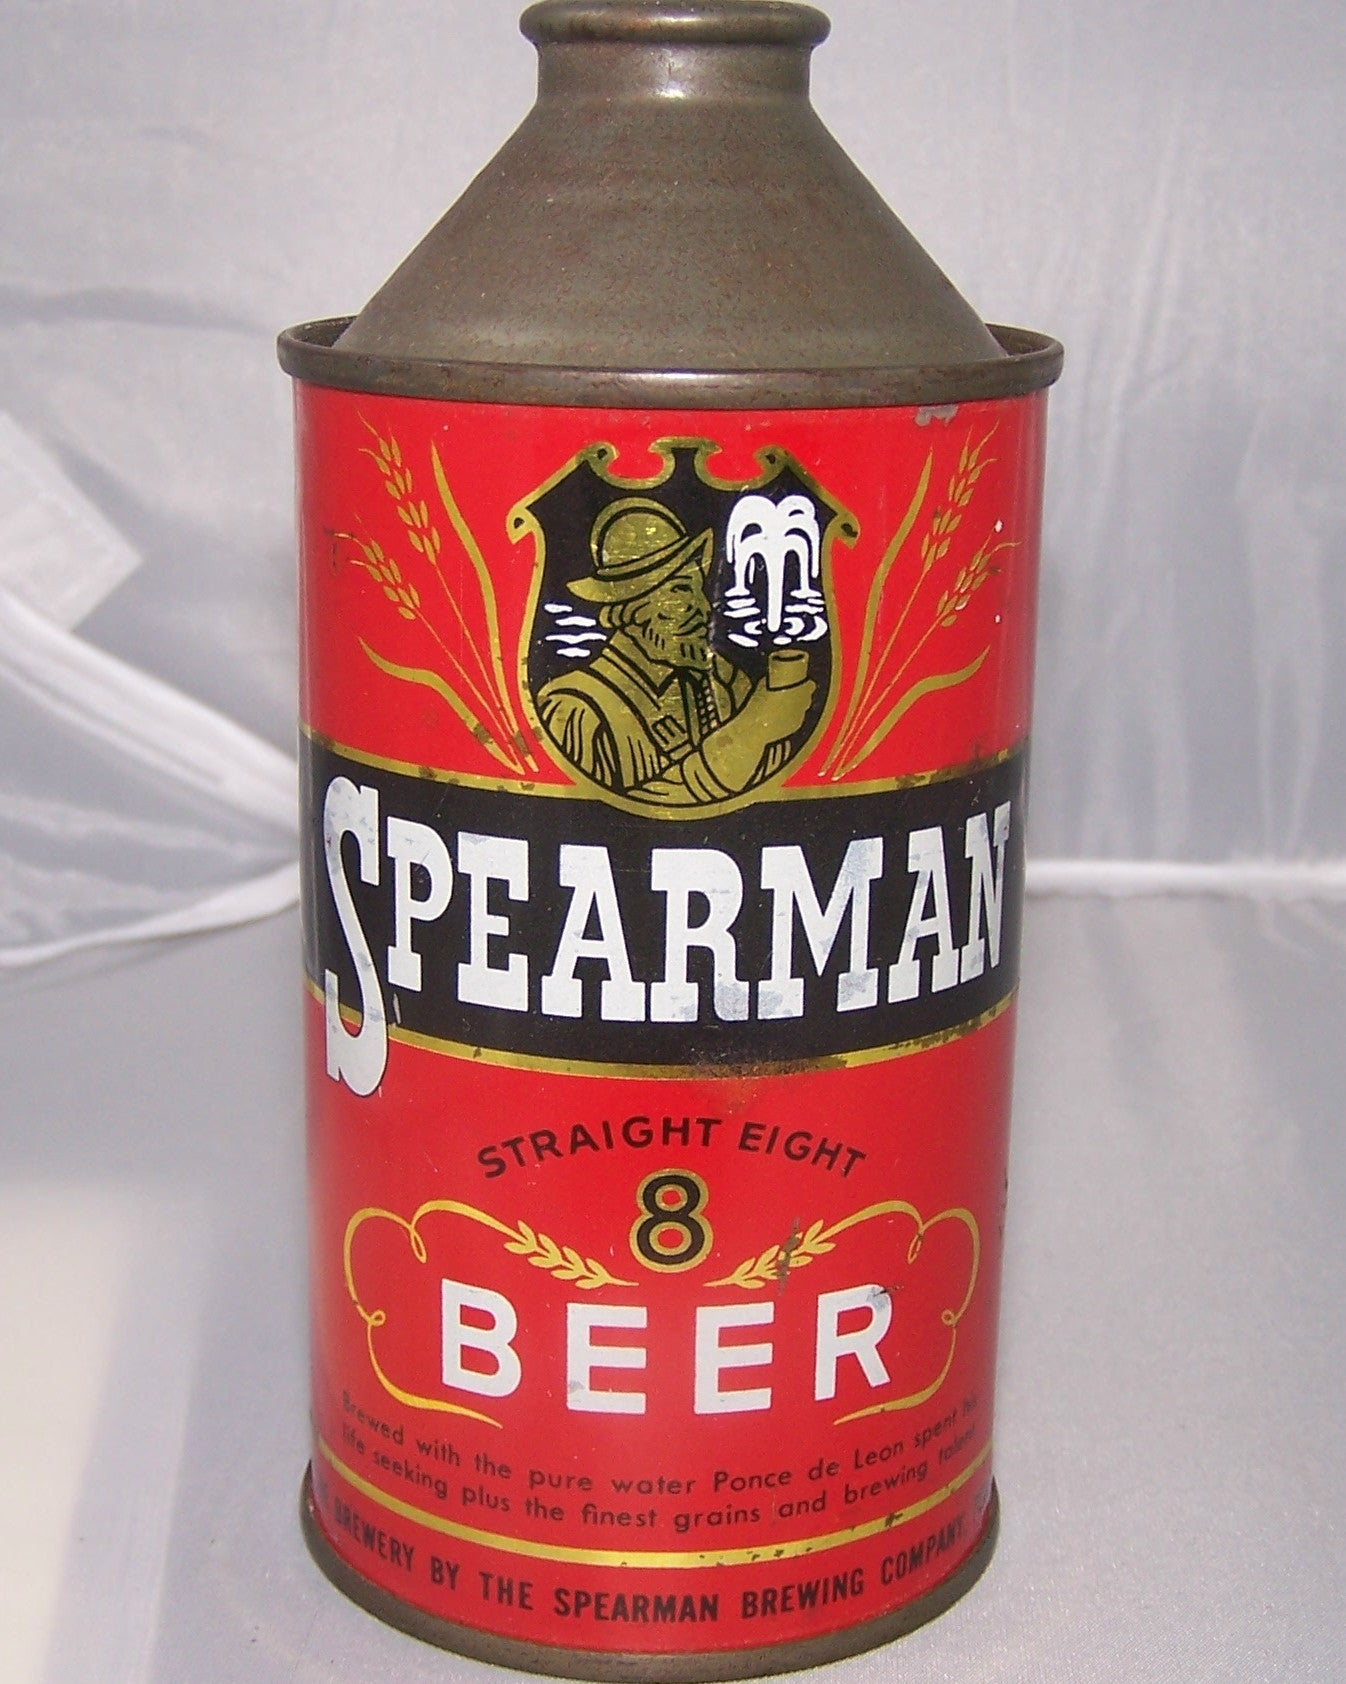 Spearman Straight 8 Beer, USBC 185-29, Grade 1/1-sold 9/21/15